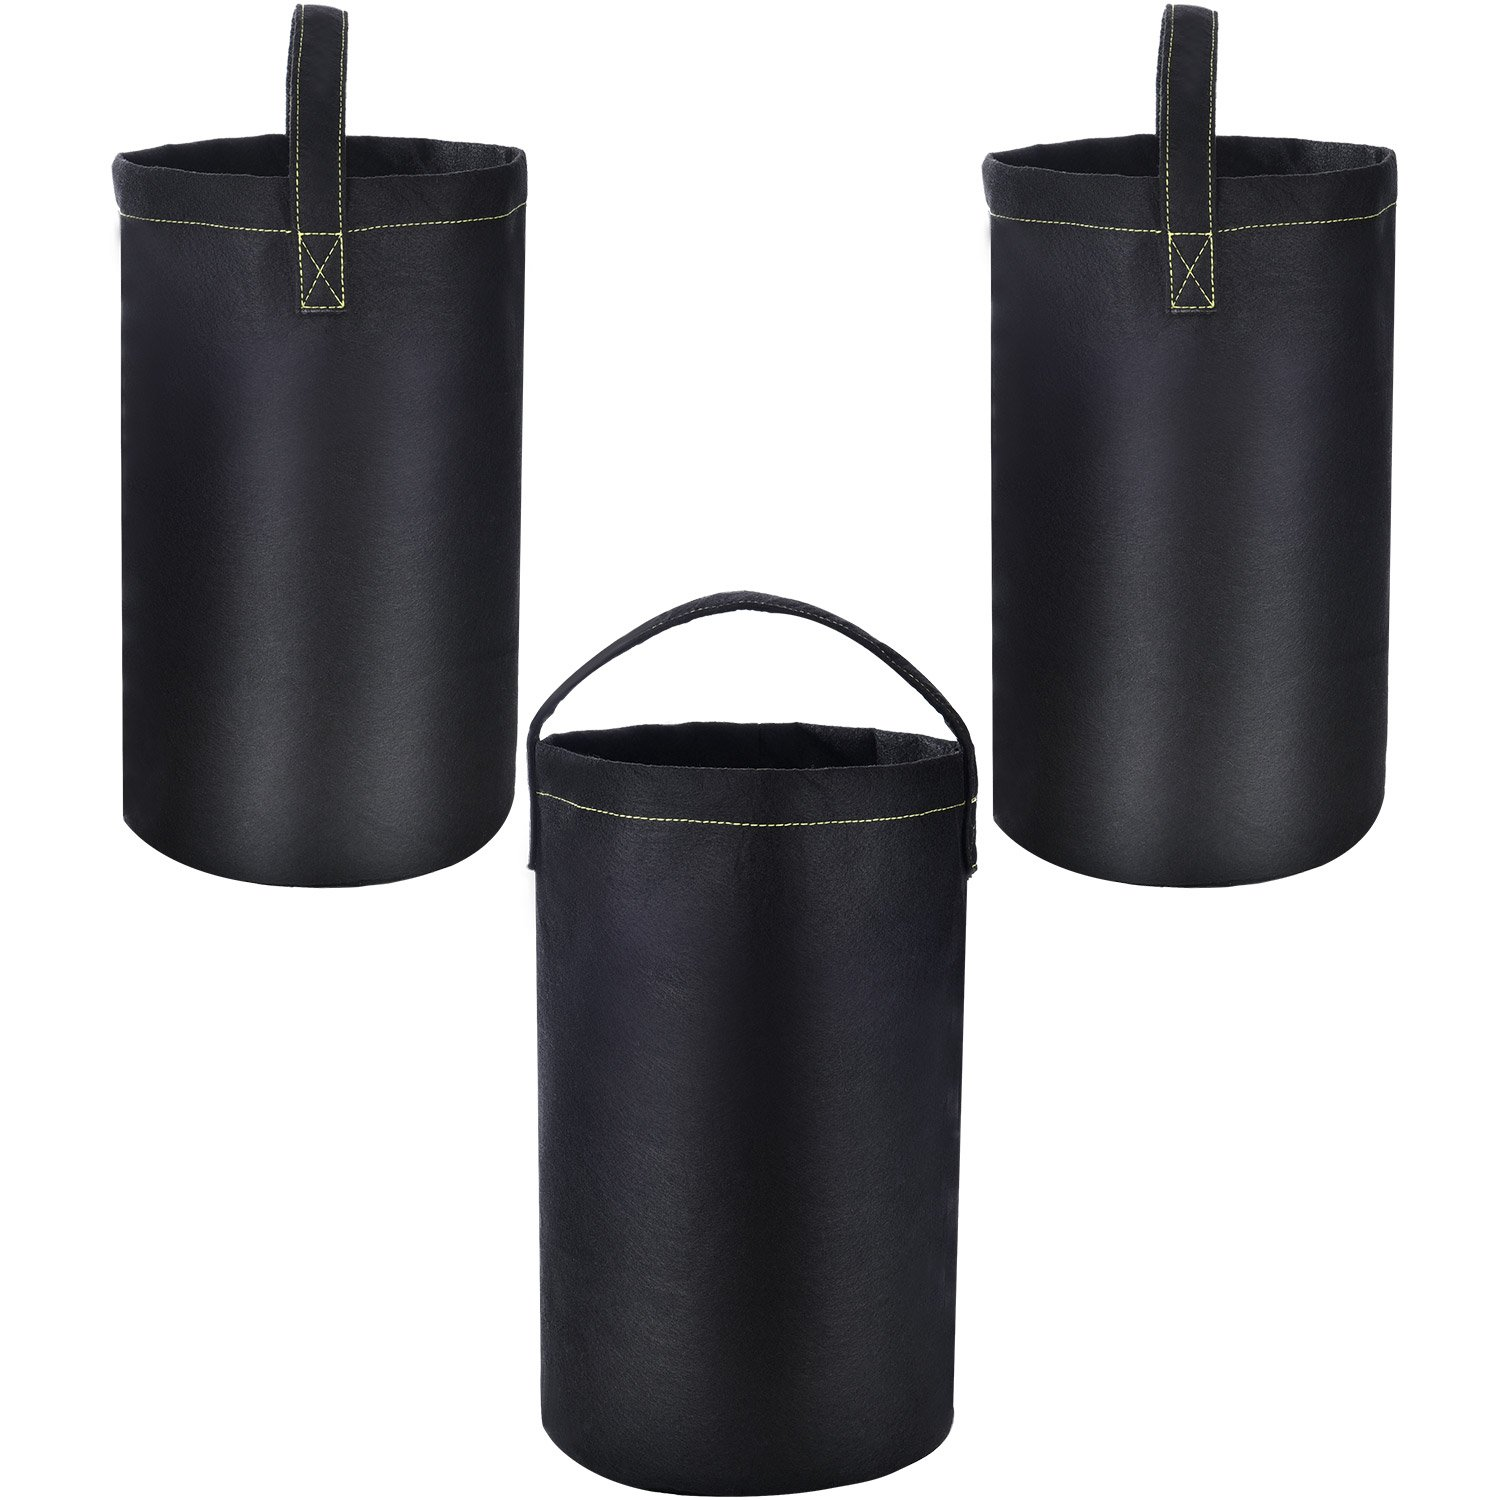 Chuangdi 3 Pack Upside Down Tomato Planter Tomato Grow Bags Fabric Pots with Handles for Tomato Potato Cucumber Vegetable Planting by Chuangdi